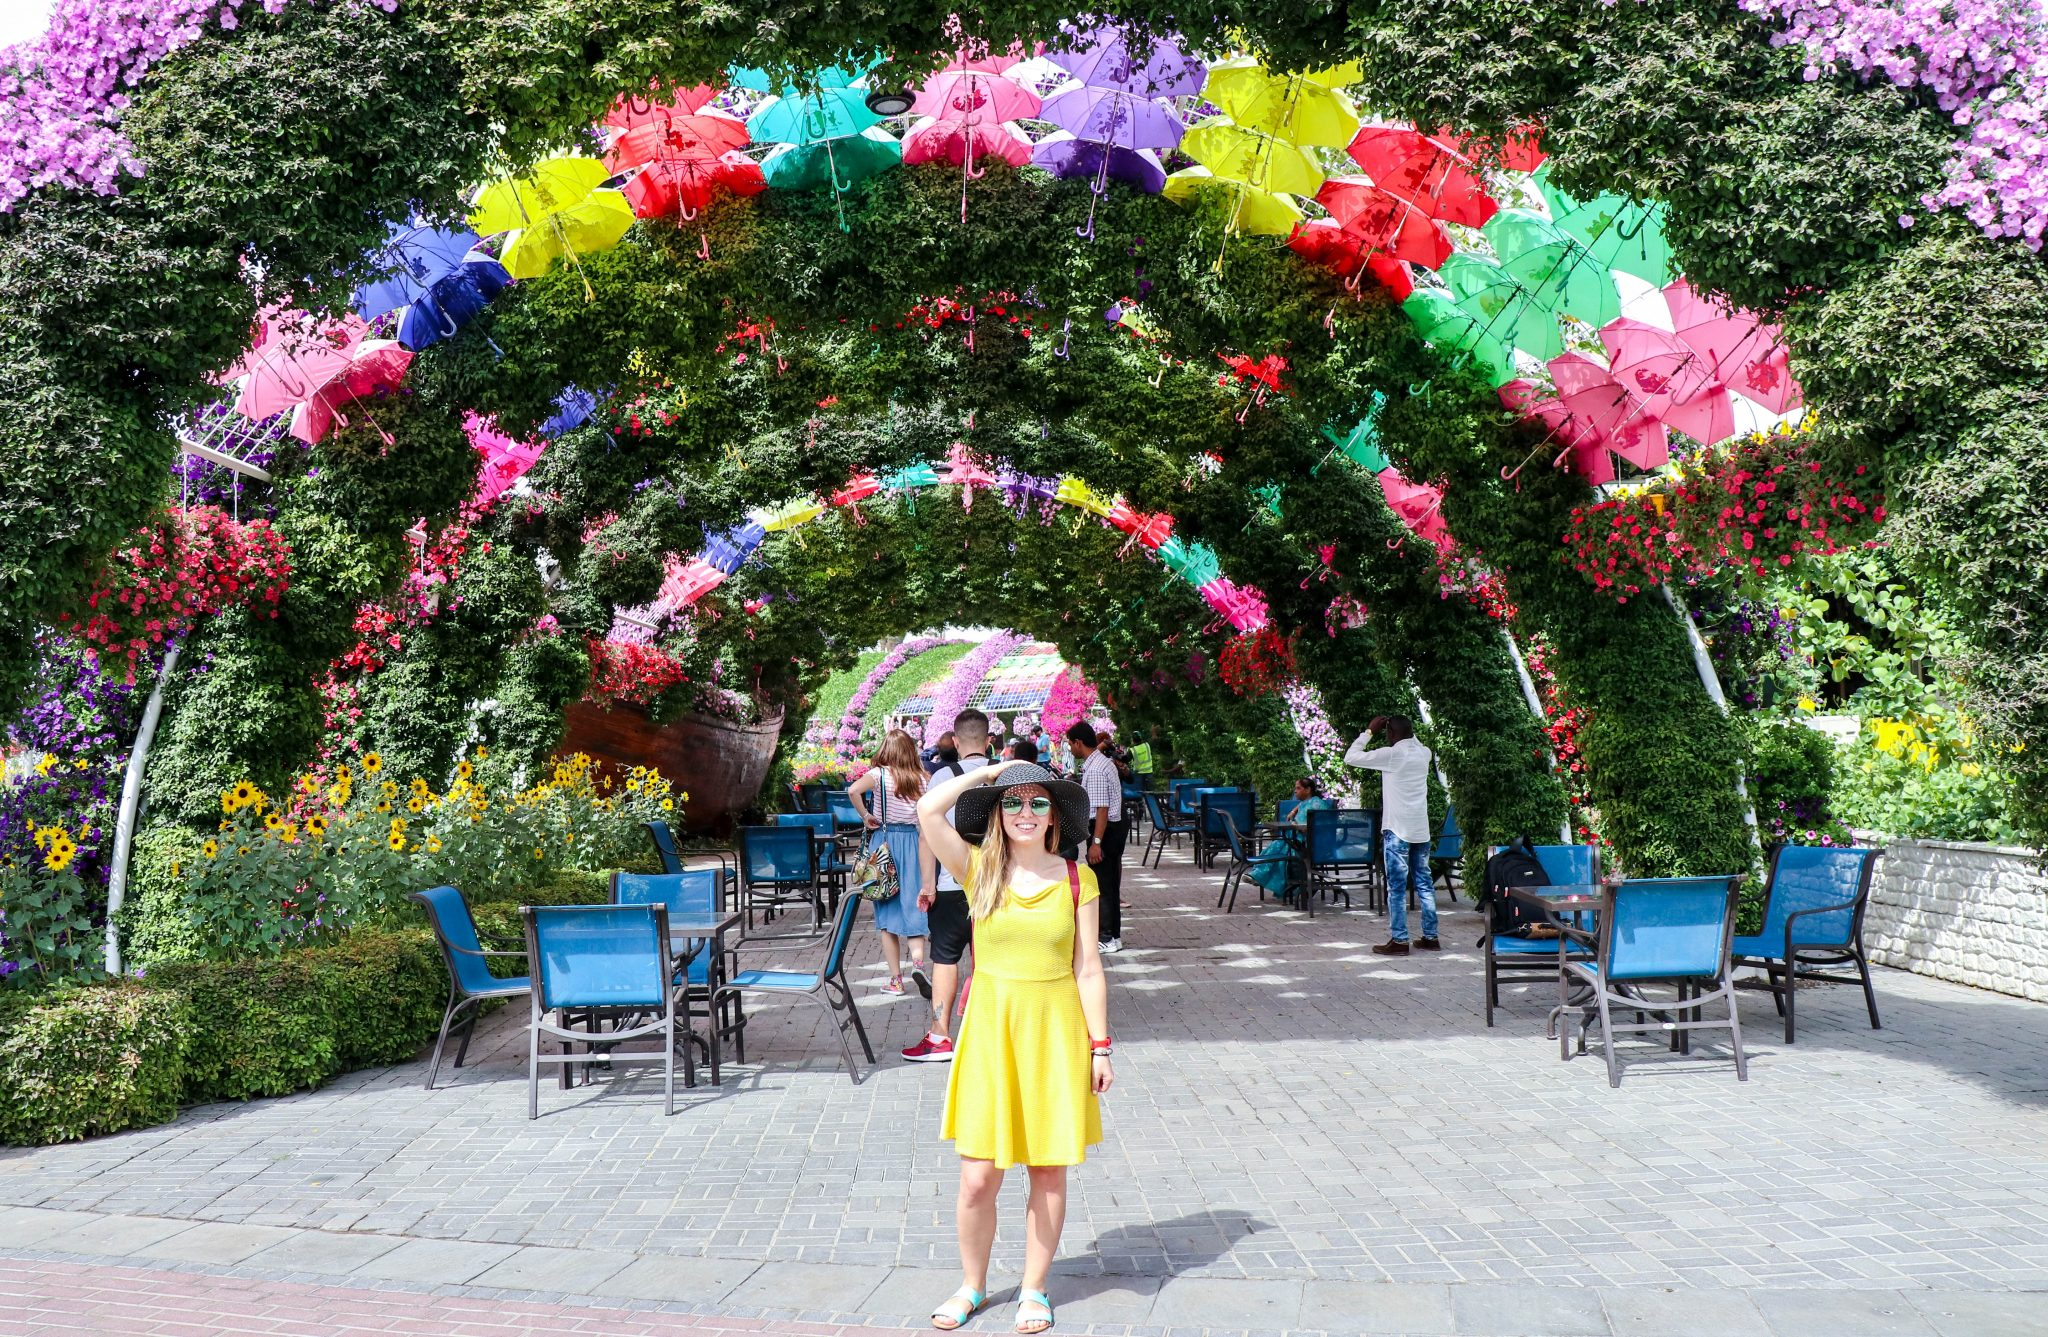 22 Reasons To Visit The Dubai Miracle Garden The Little Backpacker